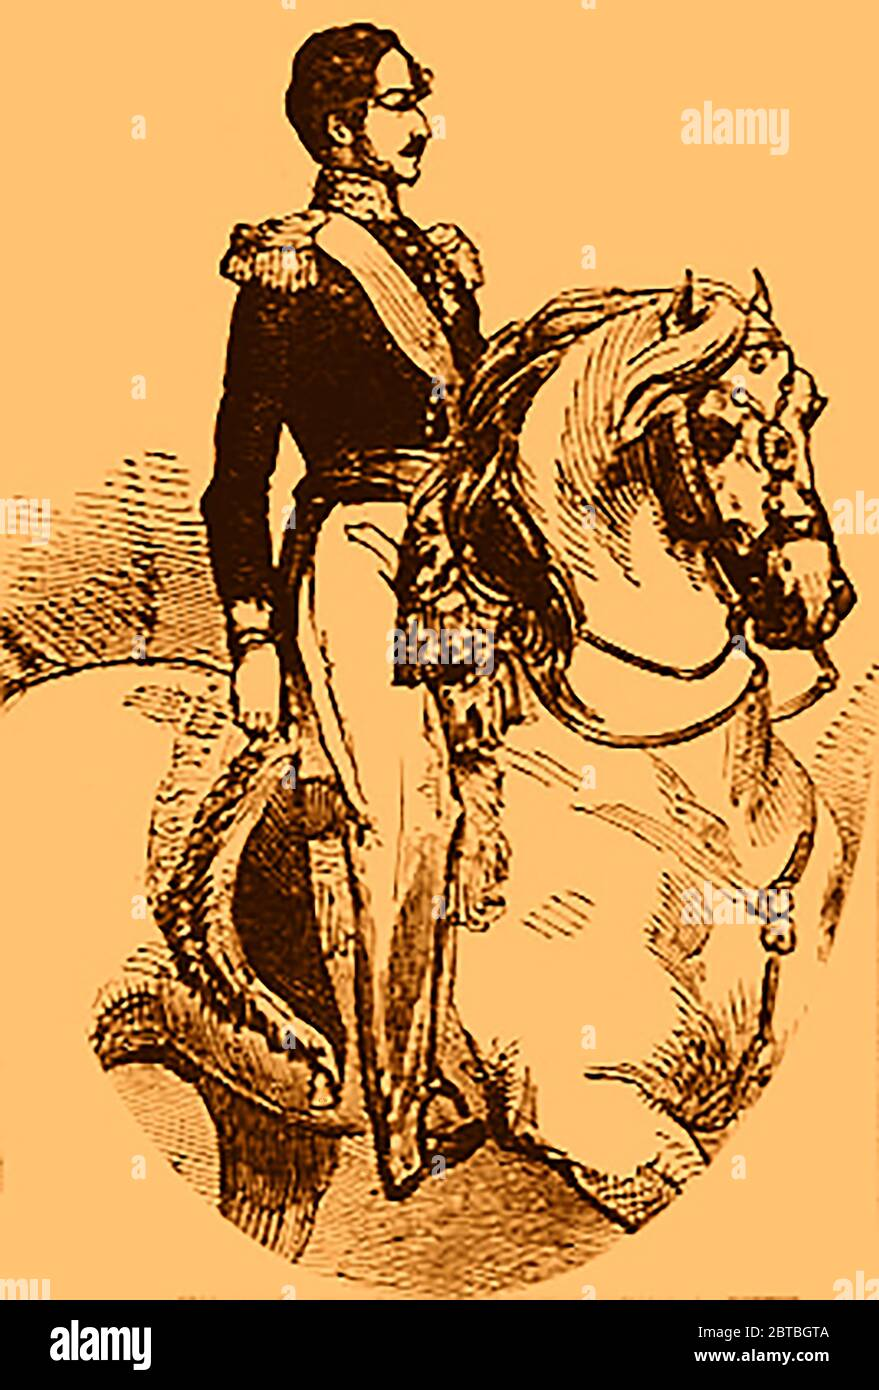 A portrait of Prince Ferdinand Philippe of Orléans (1810-1842) on his horse  painted soon after his death   - The Duke of Orleans died leaping from a runaway carriage - It is said he fractured his skull after leaping from his open carriage when the horses bolted.  (1842 illustration) Stock Photo